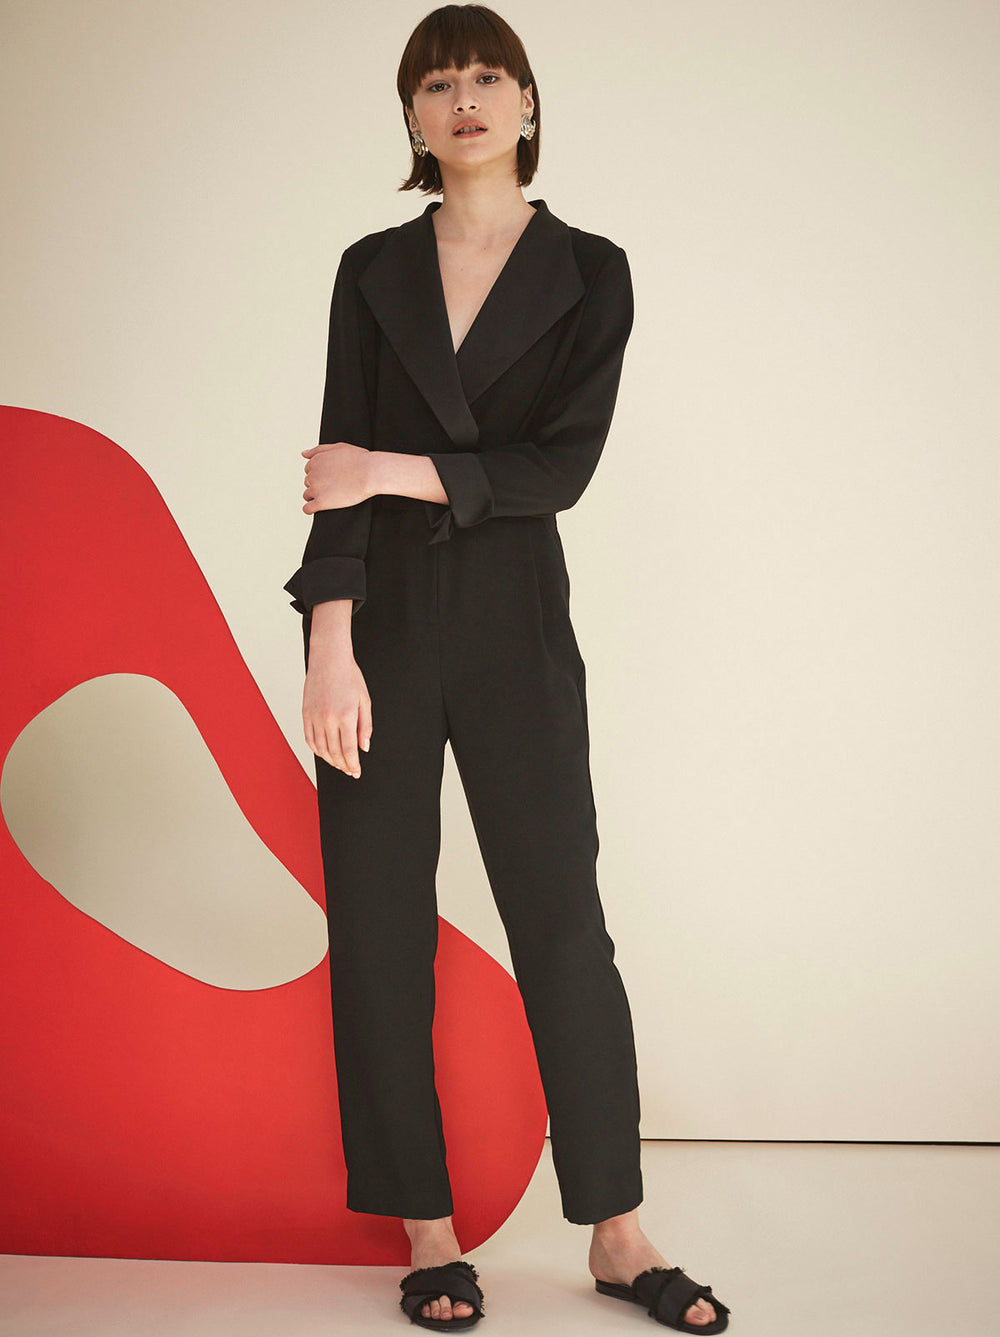 Ninette Black Tuxedo Jumpsuit | Women's Jumpsuits by KITRI Studio